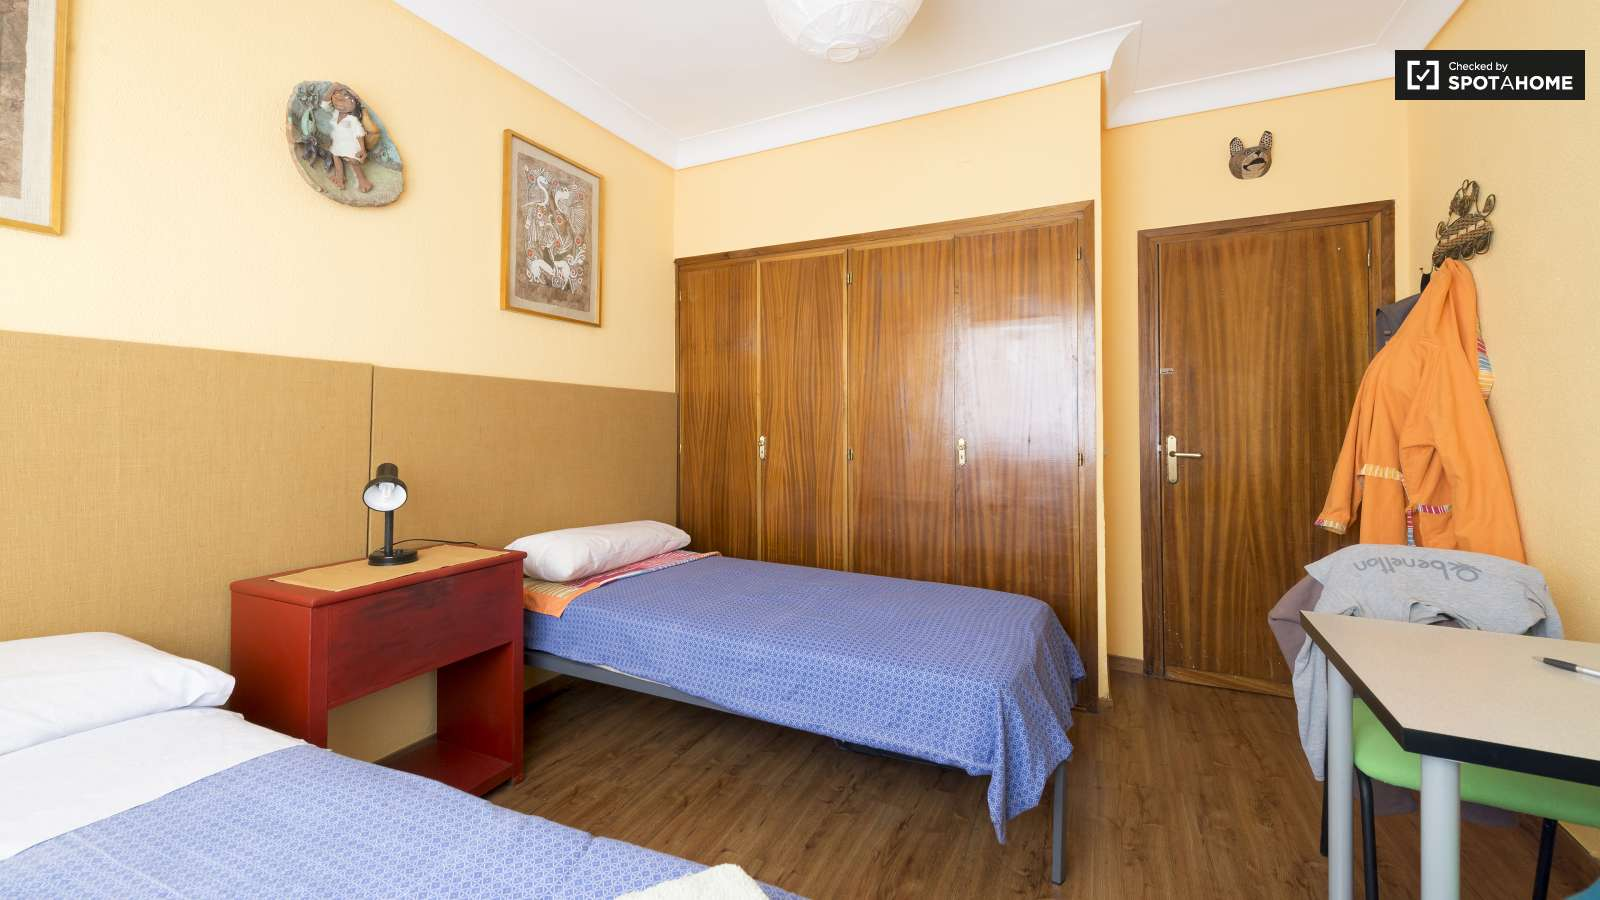 Single Bedrooms Twin Beds In 3 Single Bedrooms Available In A Residential